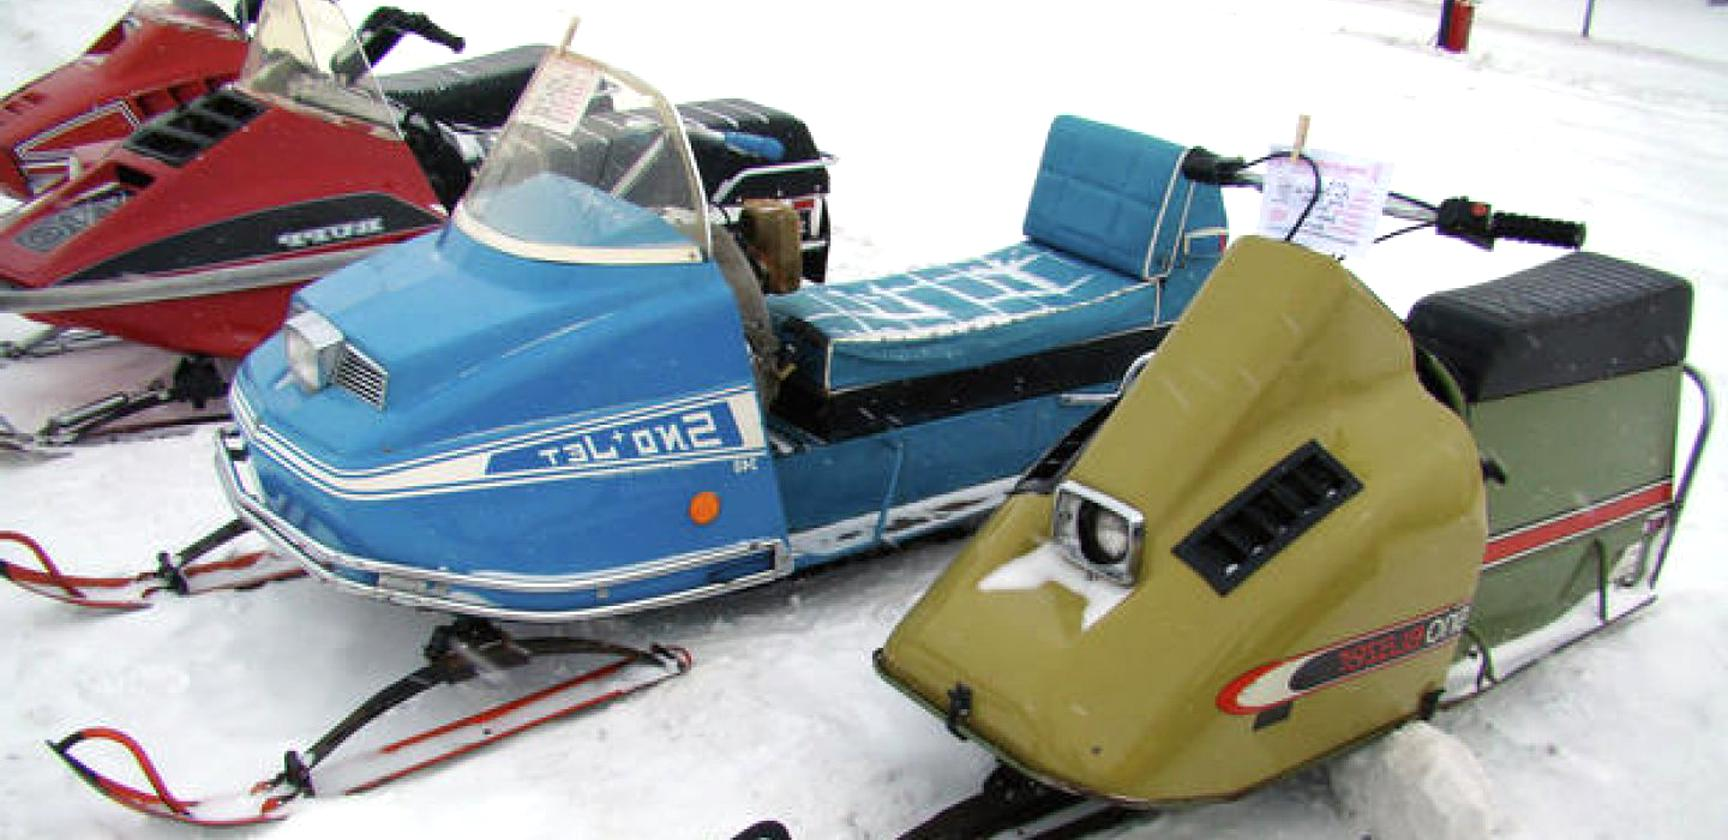 Vintage Snowmobile For Sale Only 3 Left At 65